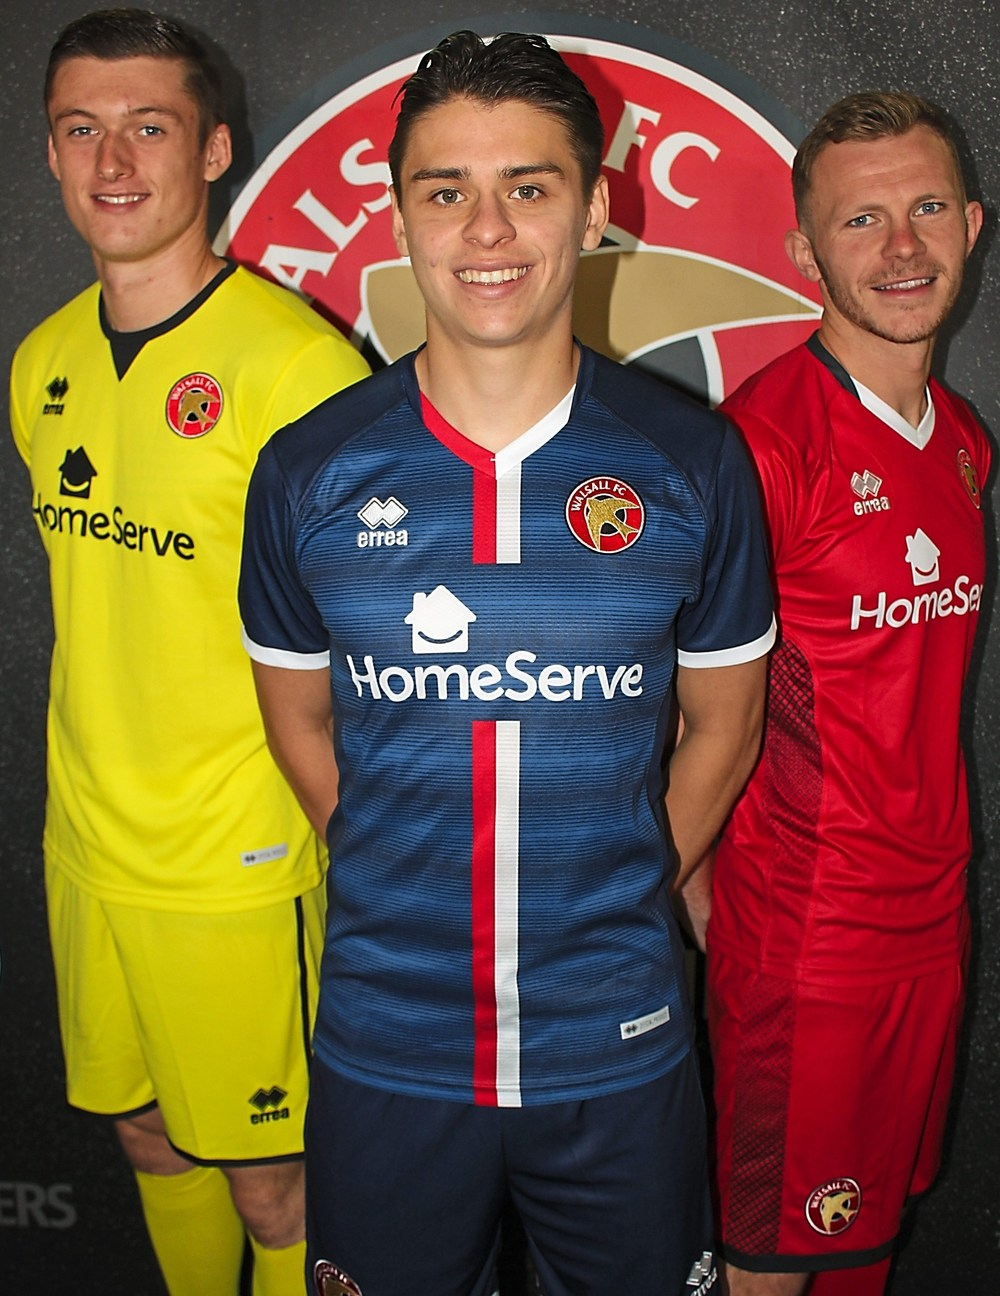 The away kit is red. It does not feature any of the stripes 13675235b